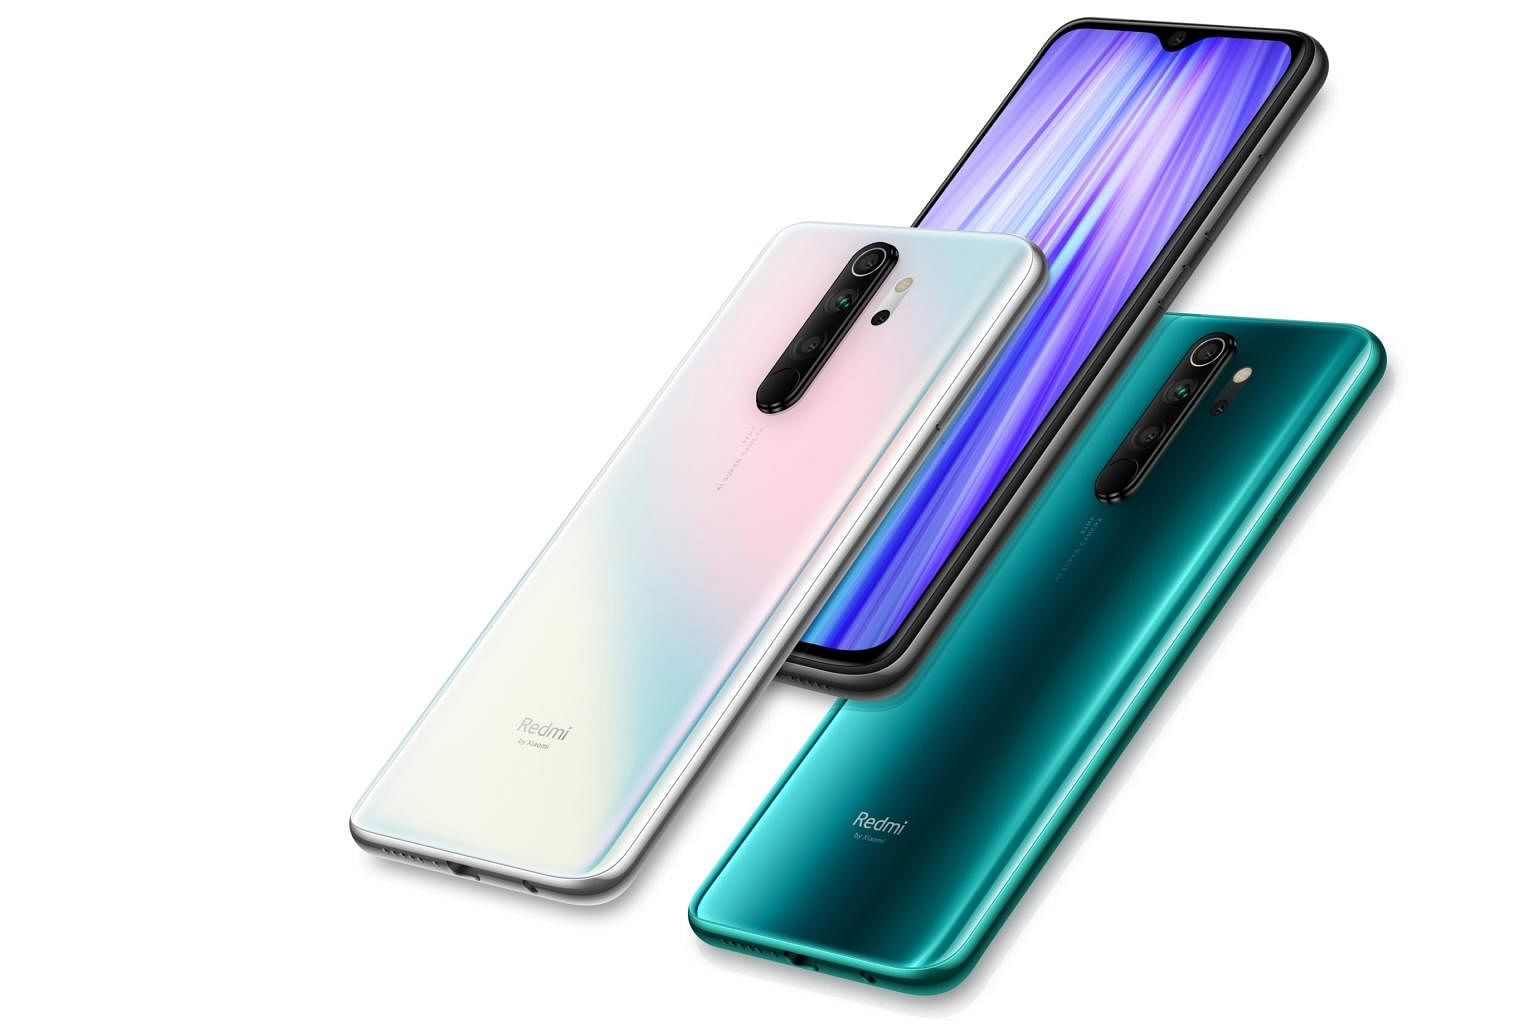 Tech Review Redmi Note 8 Pro Offers Good Value For Money Smartphones News Top Stories The Straits Times